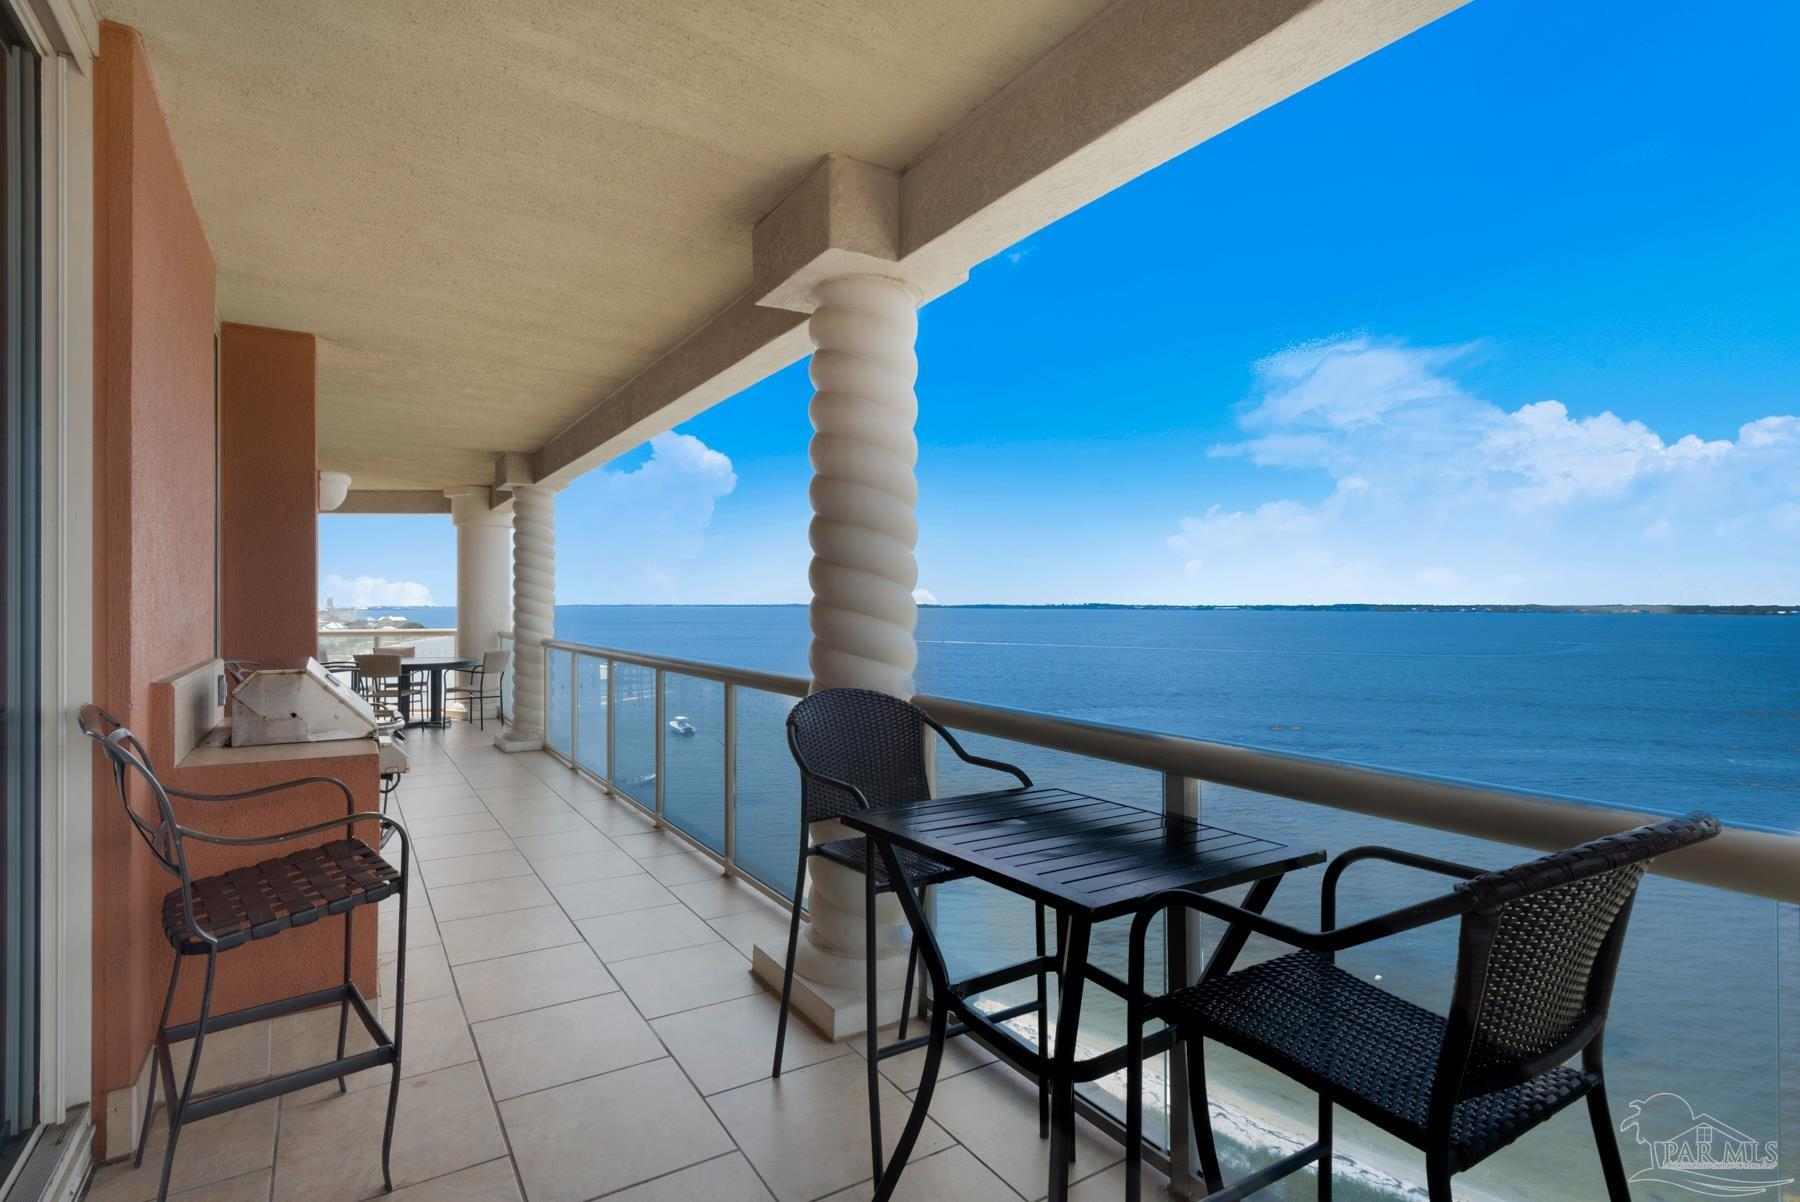 This three bedroom Portofino unit offers spectacular unobstructed views over Santa Rosa Sound. Enjoy the unobstructed Western views looking down the coastline. Tower 4 is located right by The Lifestyle Center. This unit comes with a beautiful custom made wet bar for entertaining that has new ice maker.  Upgrades include tile throughout, granite in kitchen and bathrooms, crown molding throughout, knock down ceiling finish, new beds in master and guest rooms, and outdoor cooking center. The lifestyle center includes The Terracotta restaurant, Terrazzo Bar and outdoor grill, two pools with hot tubs, an Olympic size indoor heated lap pool, spa and a fitness center overlooking Santa Rosa Sound with True and Cybex equipment. The property adjoins National Seashore to the east with miles of sugar white sand beaches and emerald green water. Our narrow island location and unique triangular shaped towers offers a water view from every room. Turn key ready!